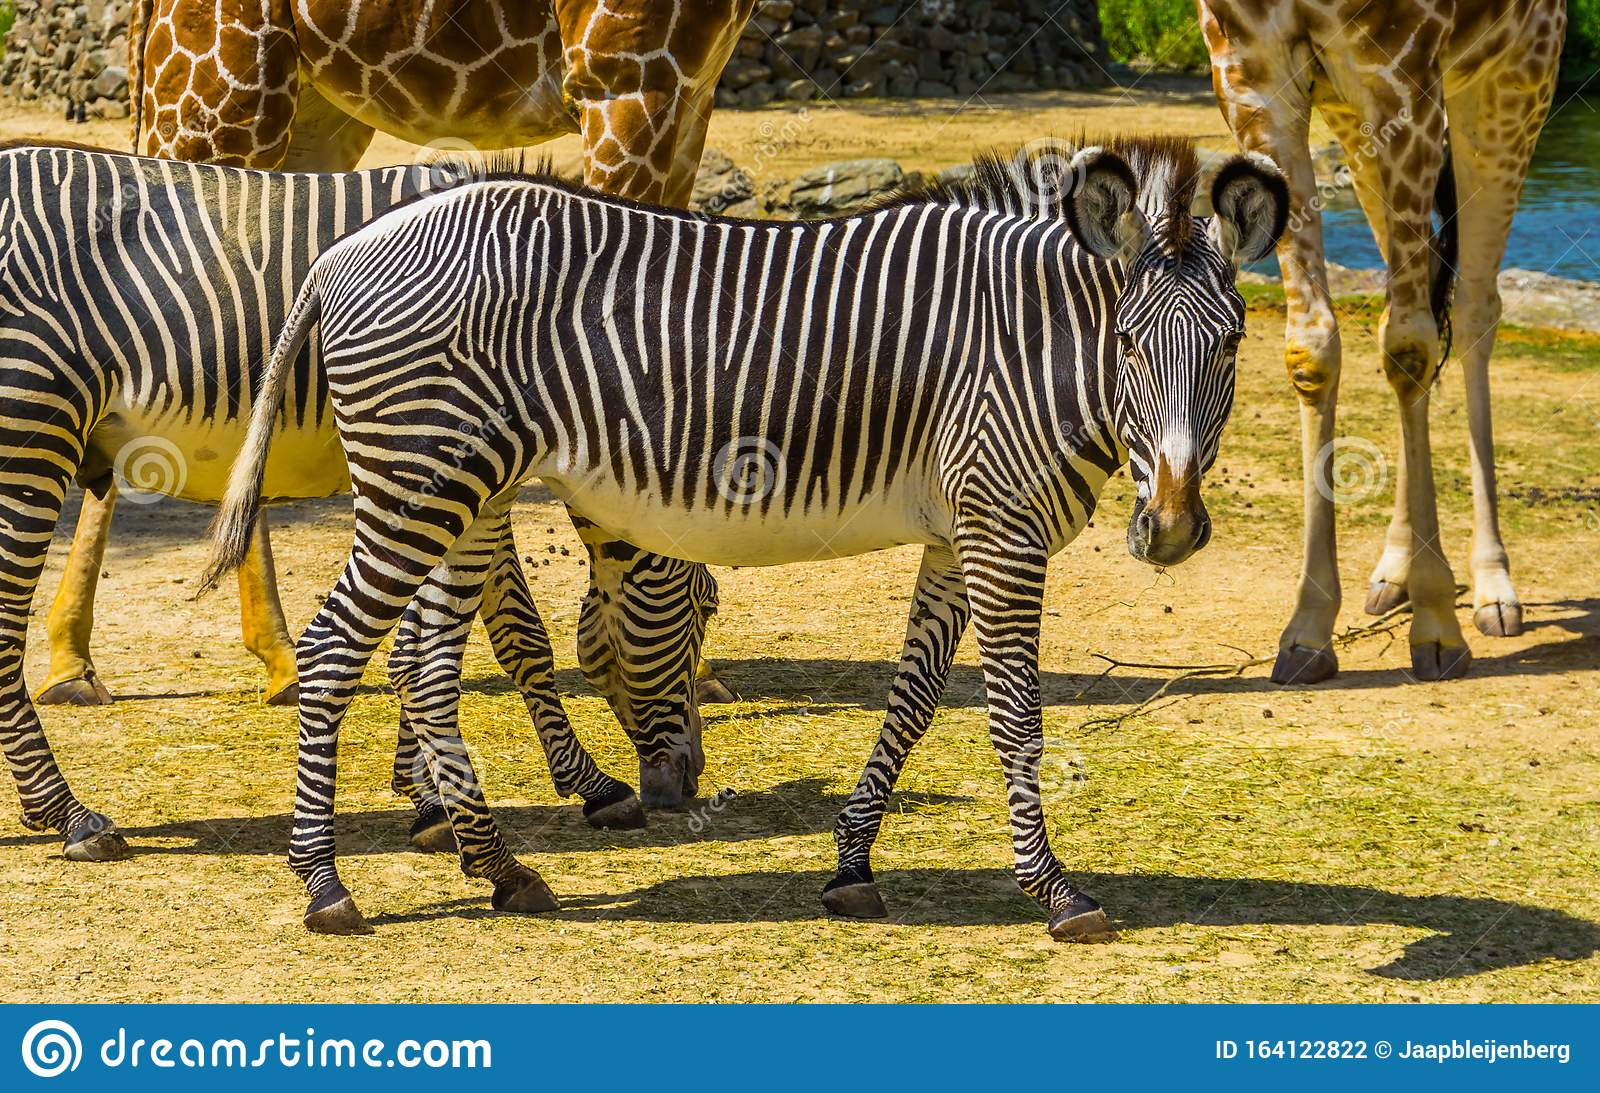 Beautiful Portrait Of A Imperial Zebra Endangered Animal Specie From Africa Black And White Striped Wild Horse Stock Photo Image Of Exotic Imperial 164122822